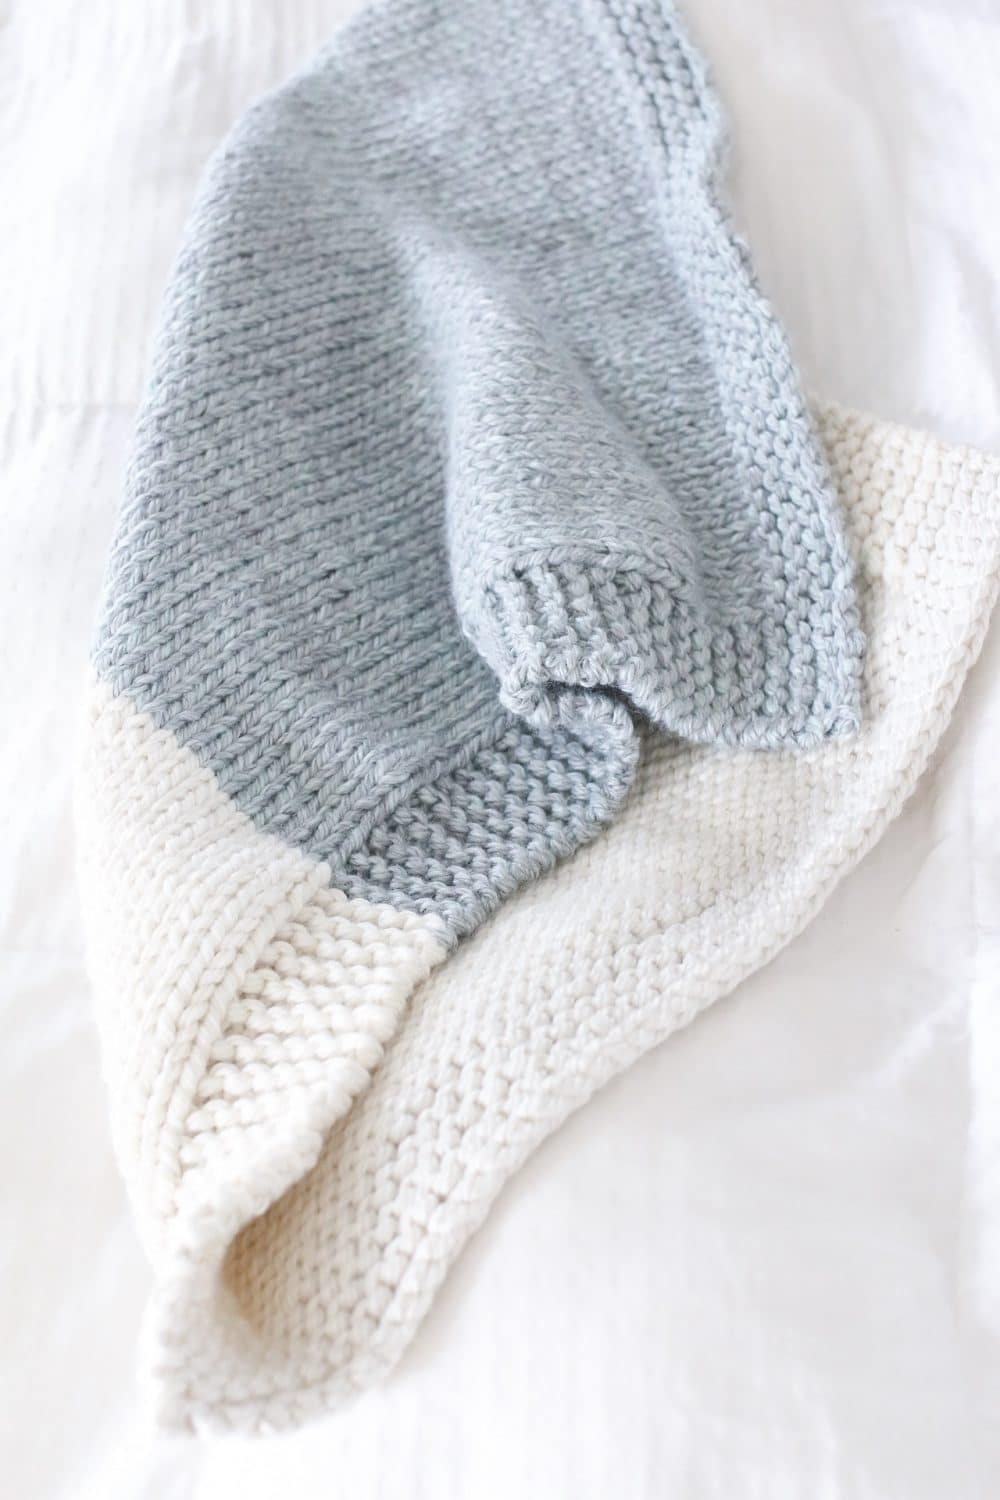 Free Knitting Patterns For Baby Blankets 4 Skein Knit Heirloom Ba Blanket The Sweeter Side Of Mommyhood